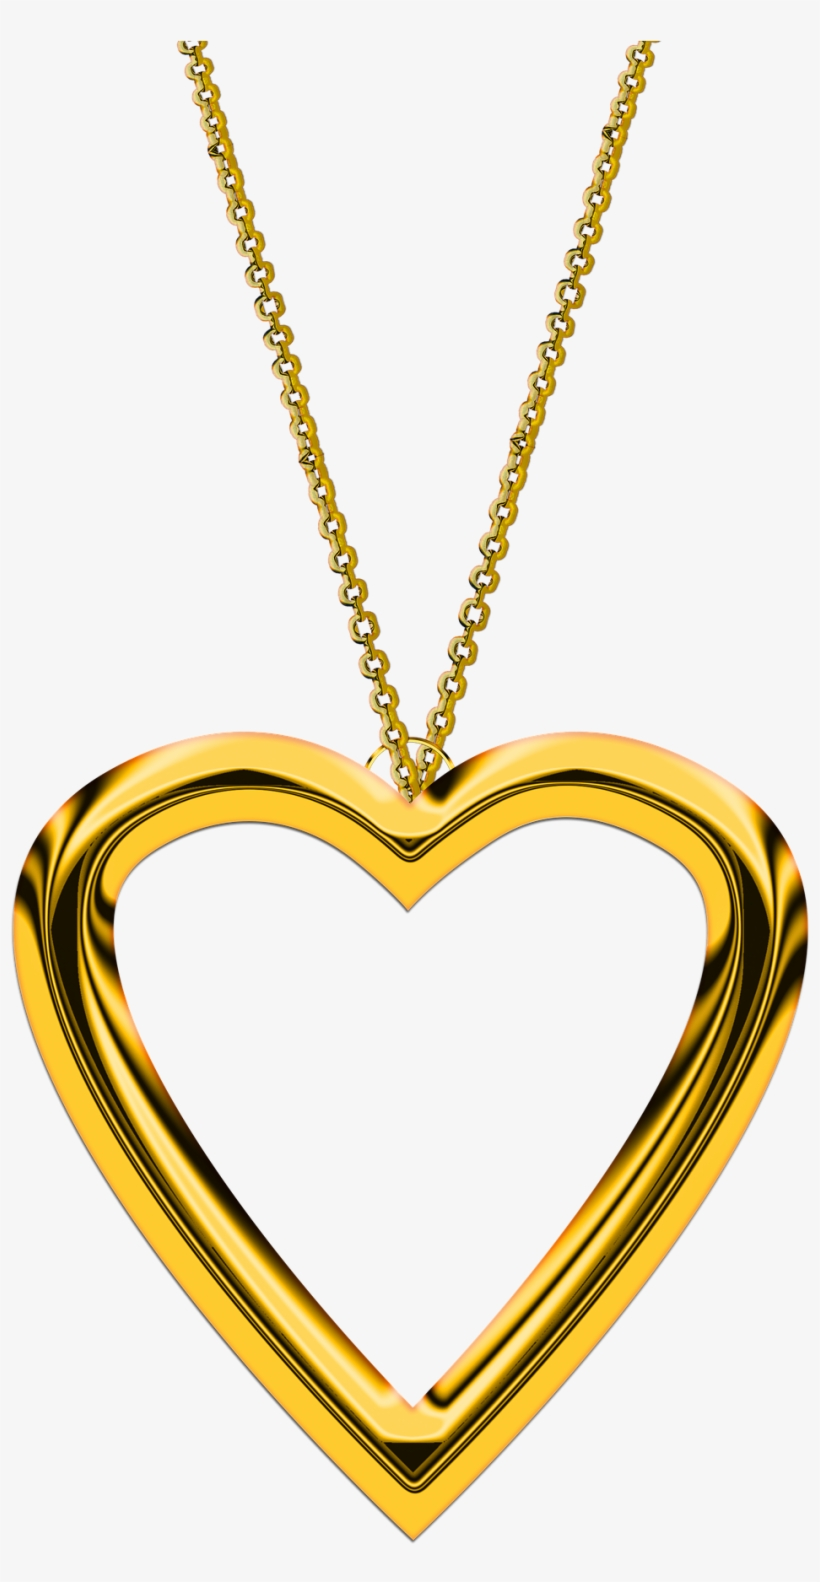 Second Hand Collections Of Gold Jewellery Are The Ideal - Gold Heart Pendant Png, transparent png #7756848